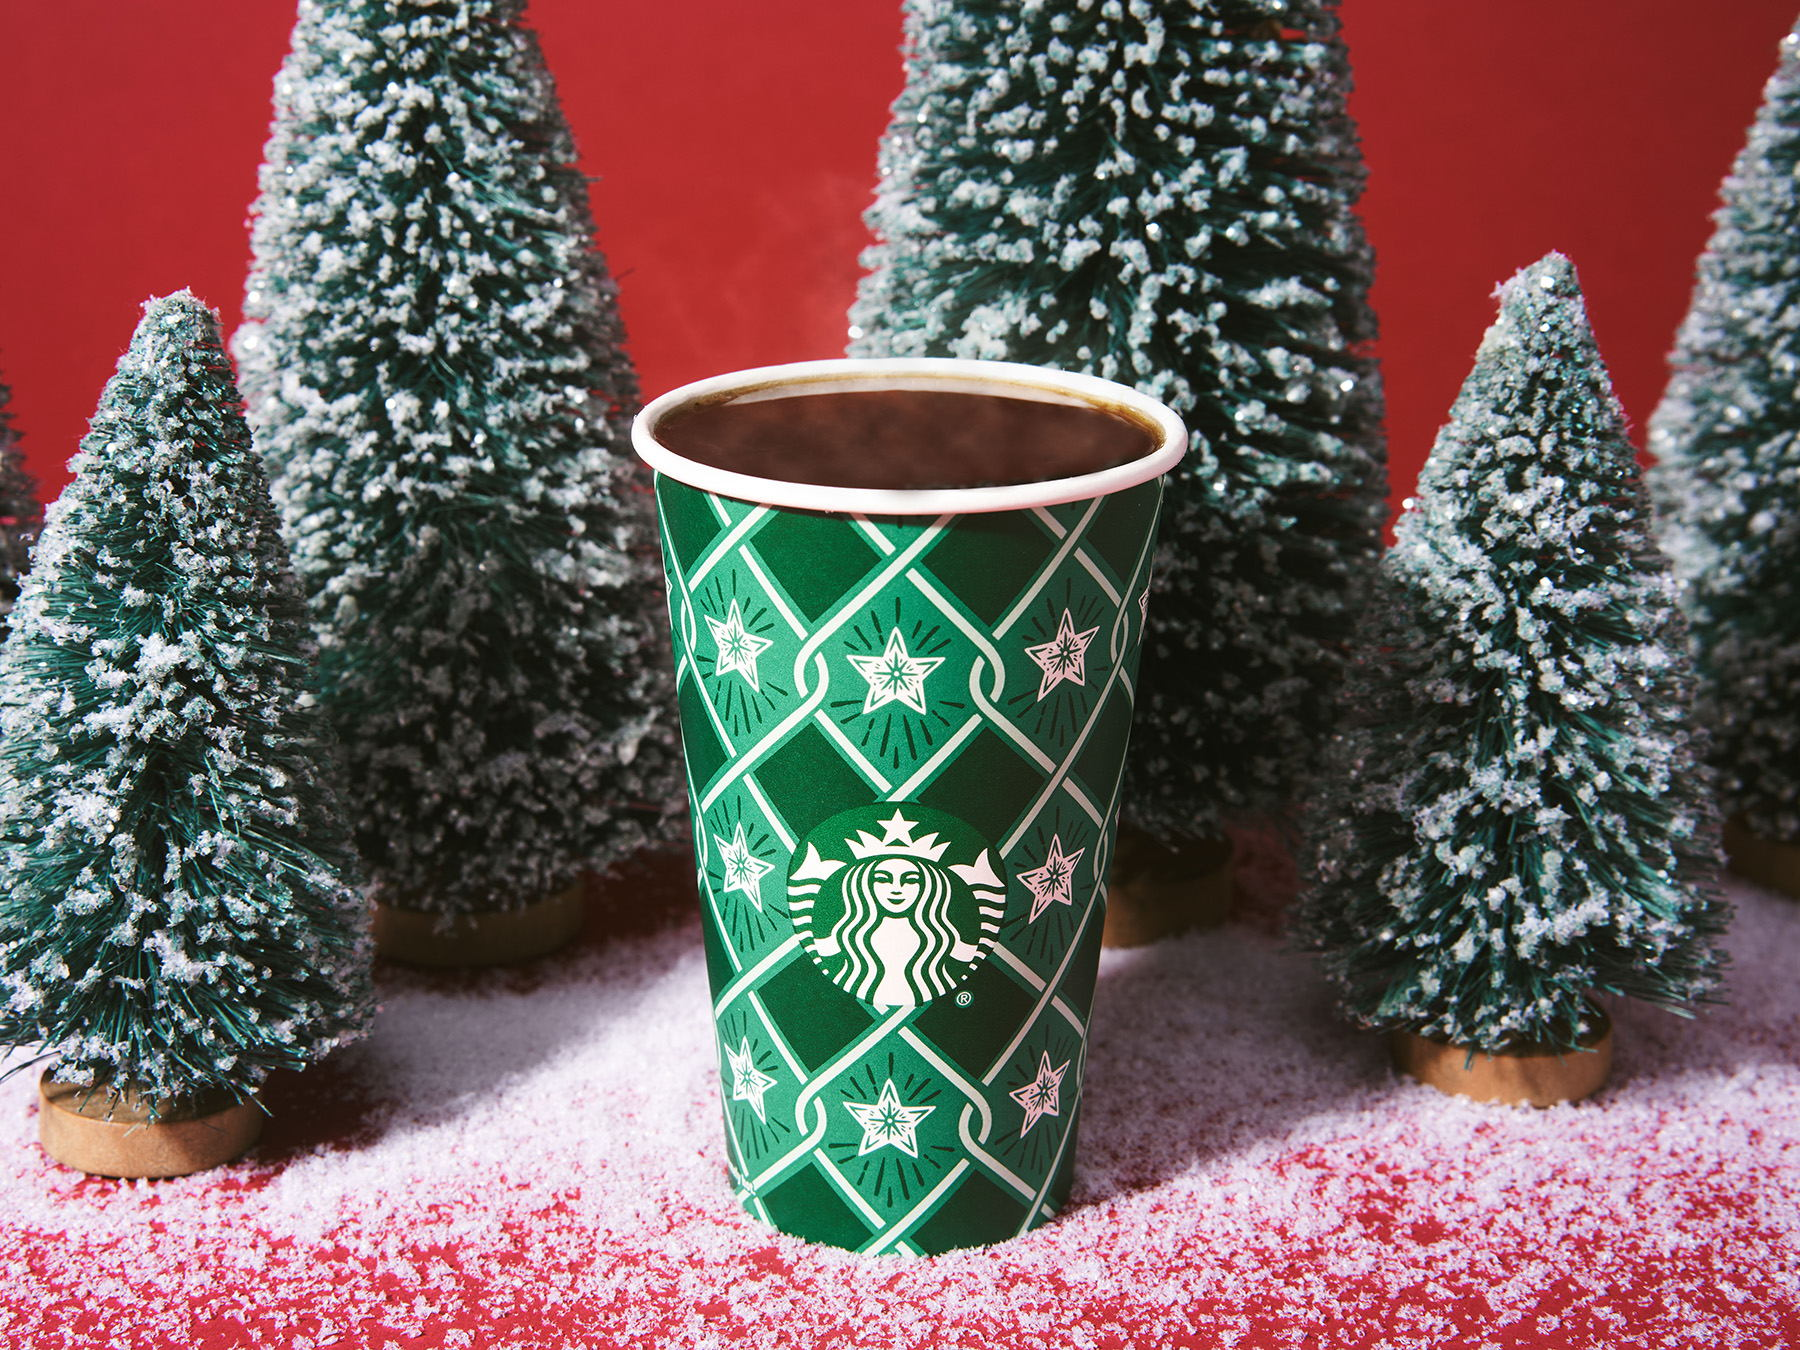 The_Dieline_Starbucks_Holiday-JStrutz-103118-0630_1.jpg